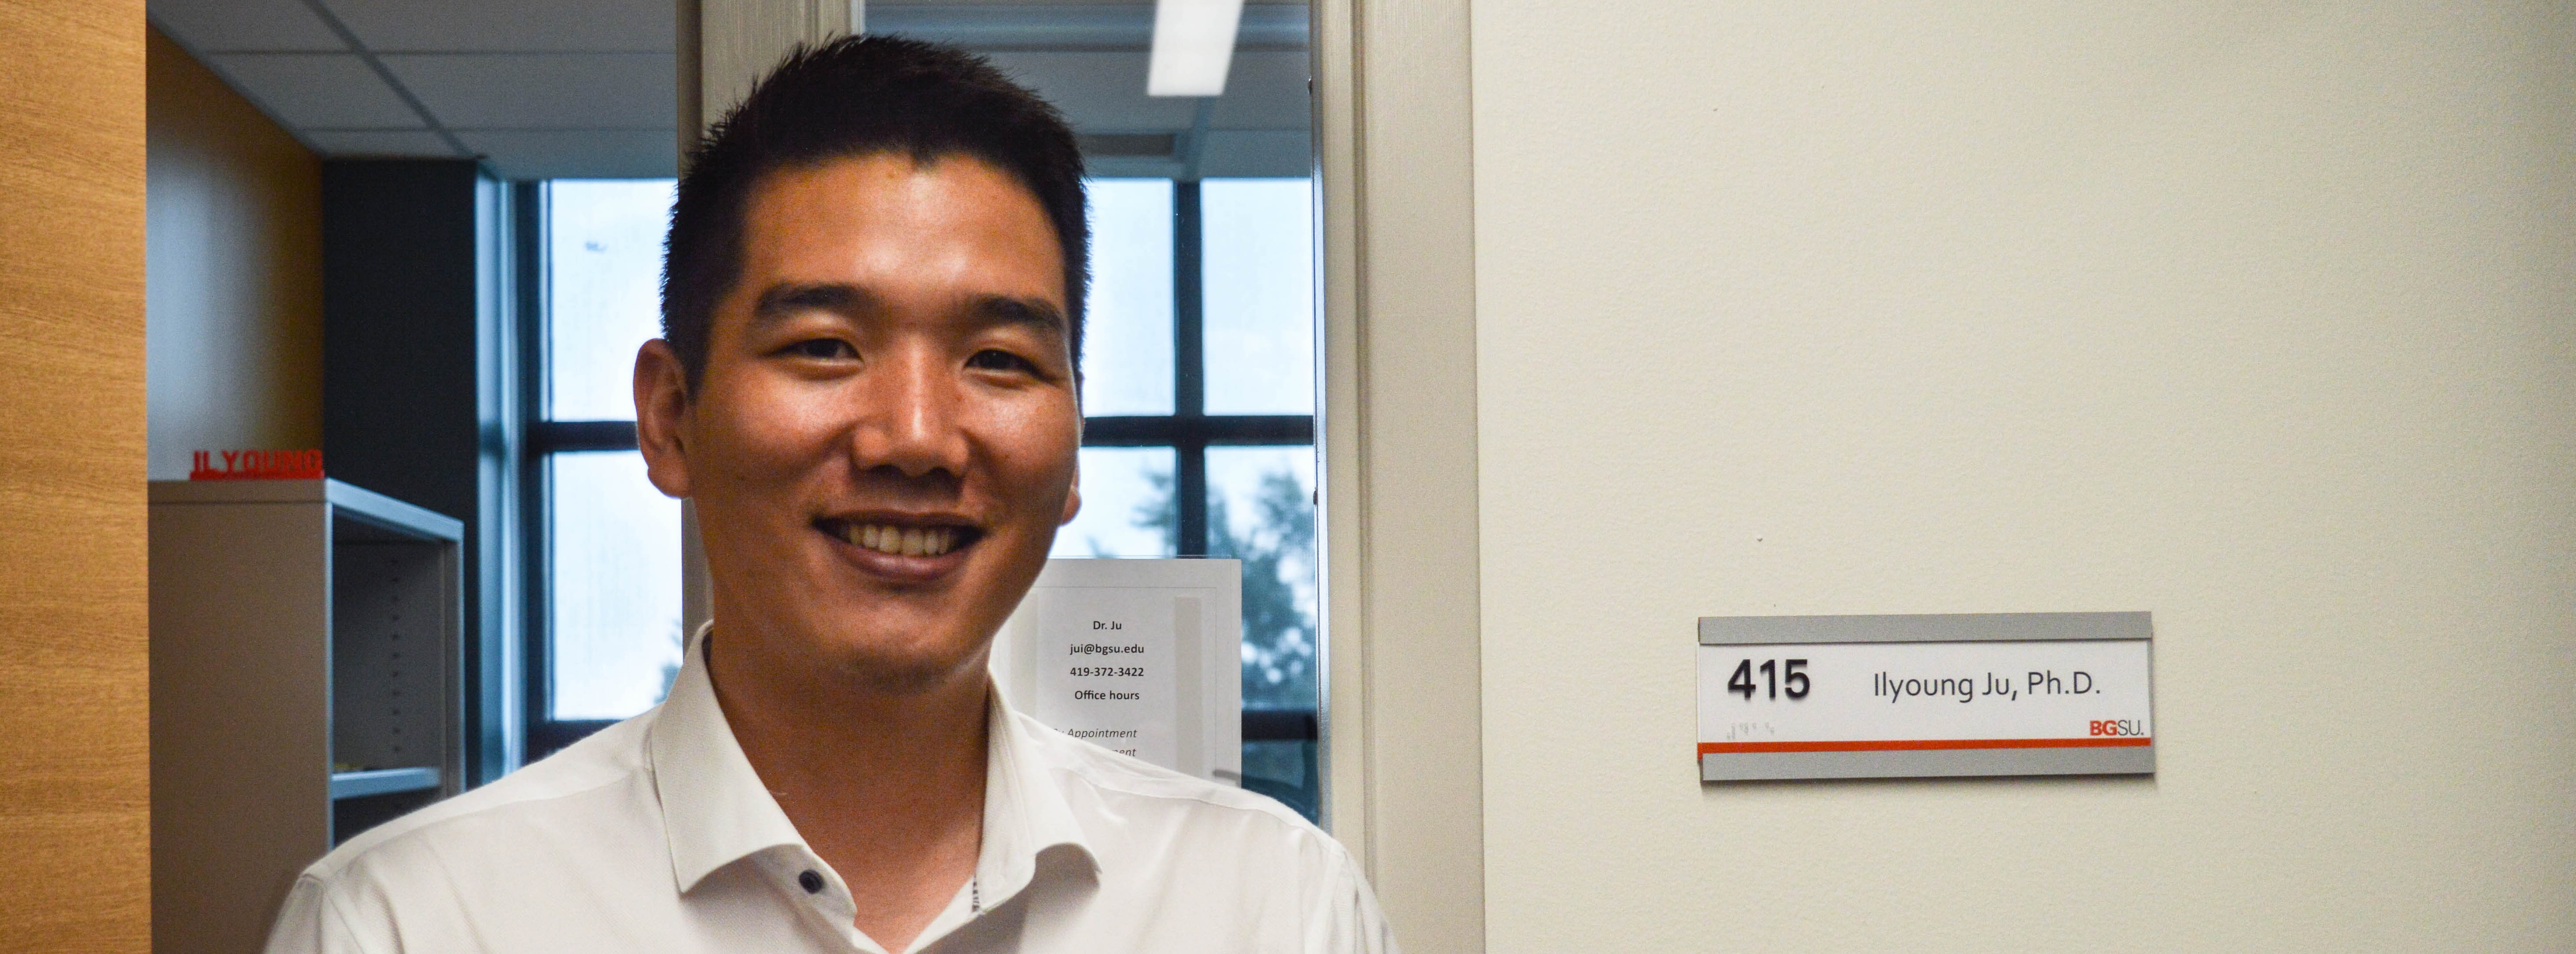 Faculty Focus: New to BGSU Dr. Ilyoung Ju